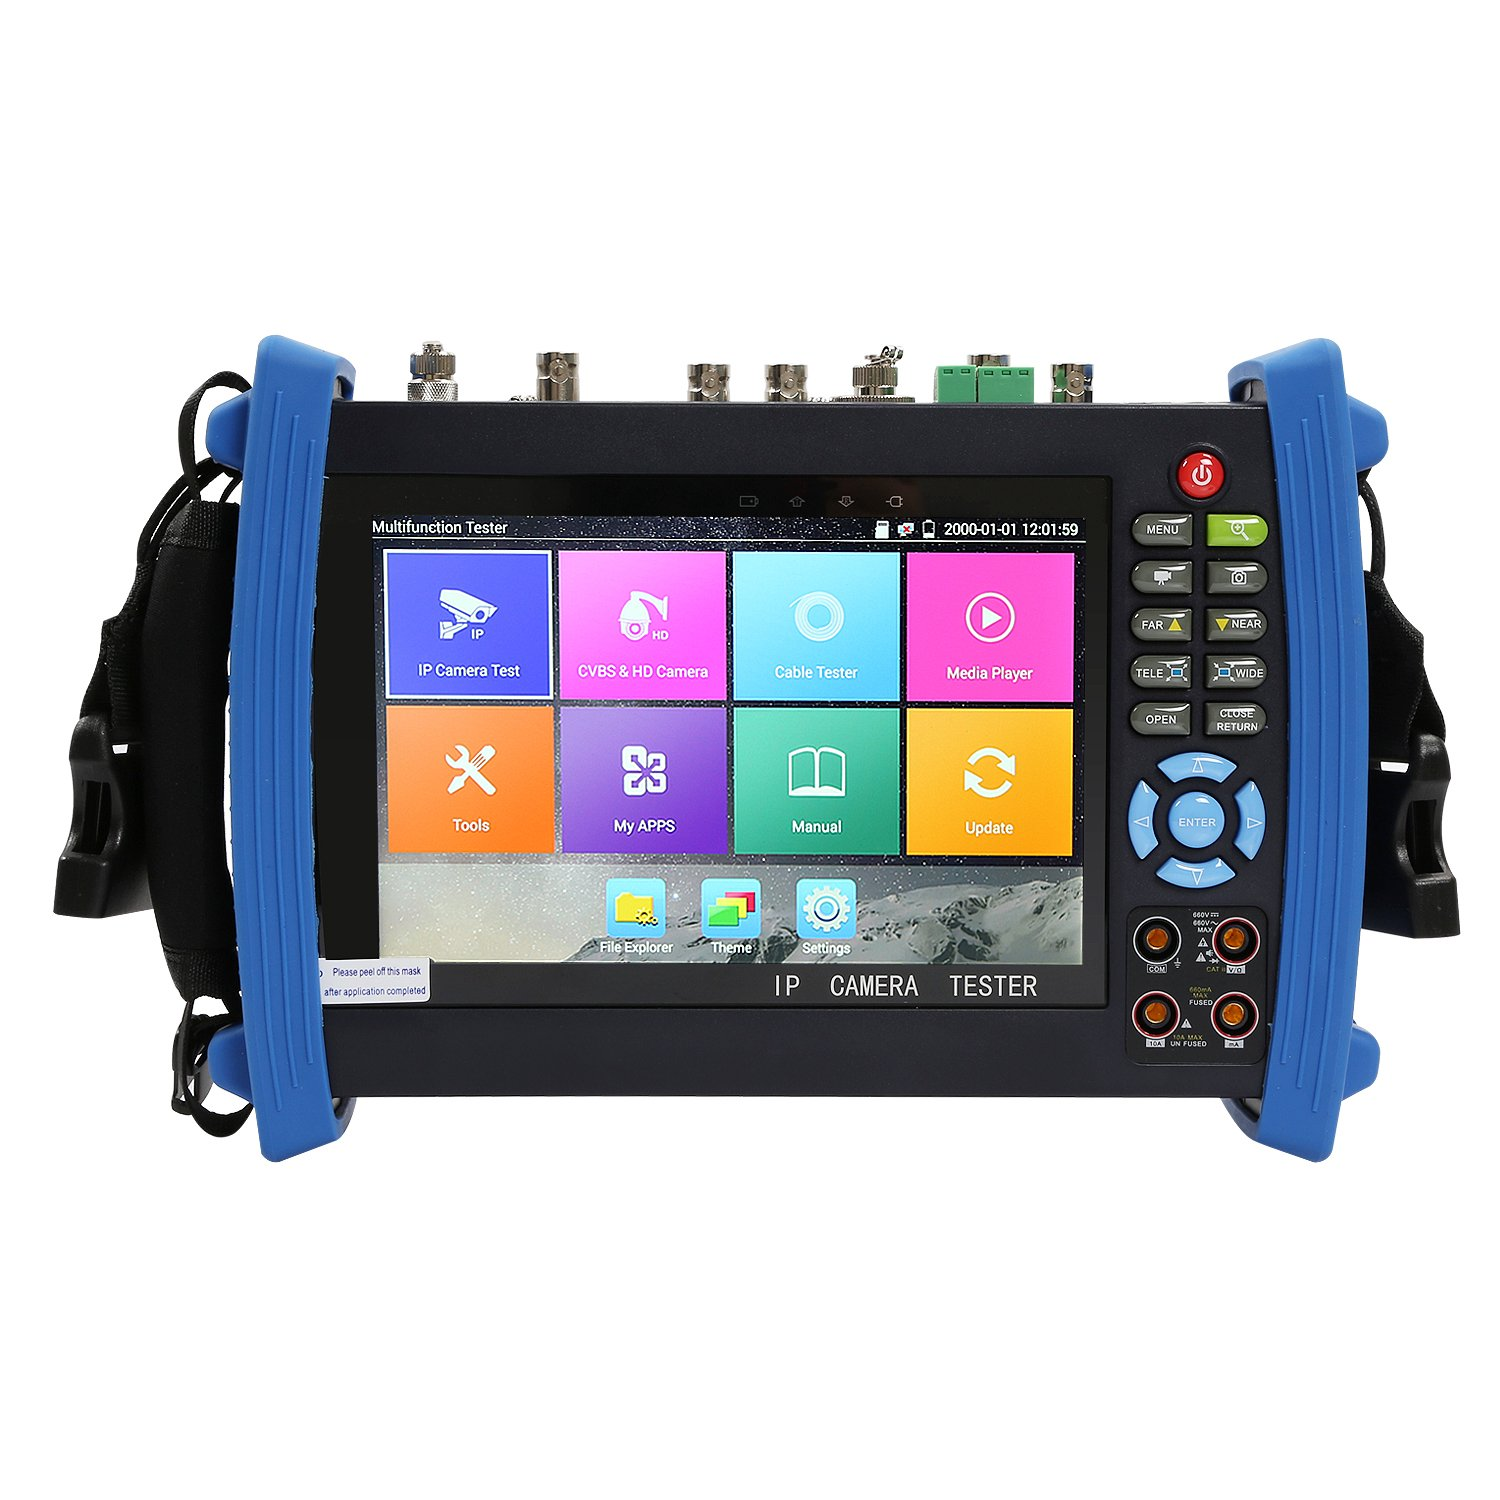 Wsdcam 7 Inch All in One 1080p Retina Display IP Camera Tester Security CCTV Tester Monitor with SDI/TVI/AHD/CVI/TDR/OPM/VFL/POE/WIFI/Multimeter/4K H.265/HDMI In&Out/Firmware Upgrade 8600MOVTSADH-Plus by wsdcam